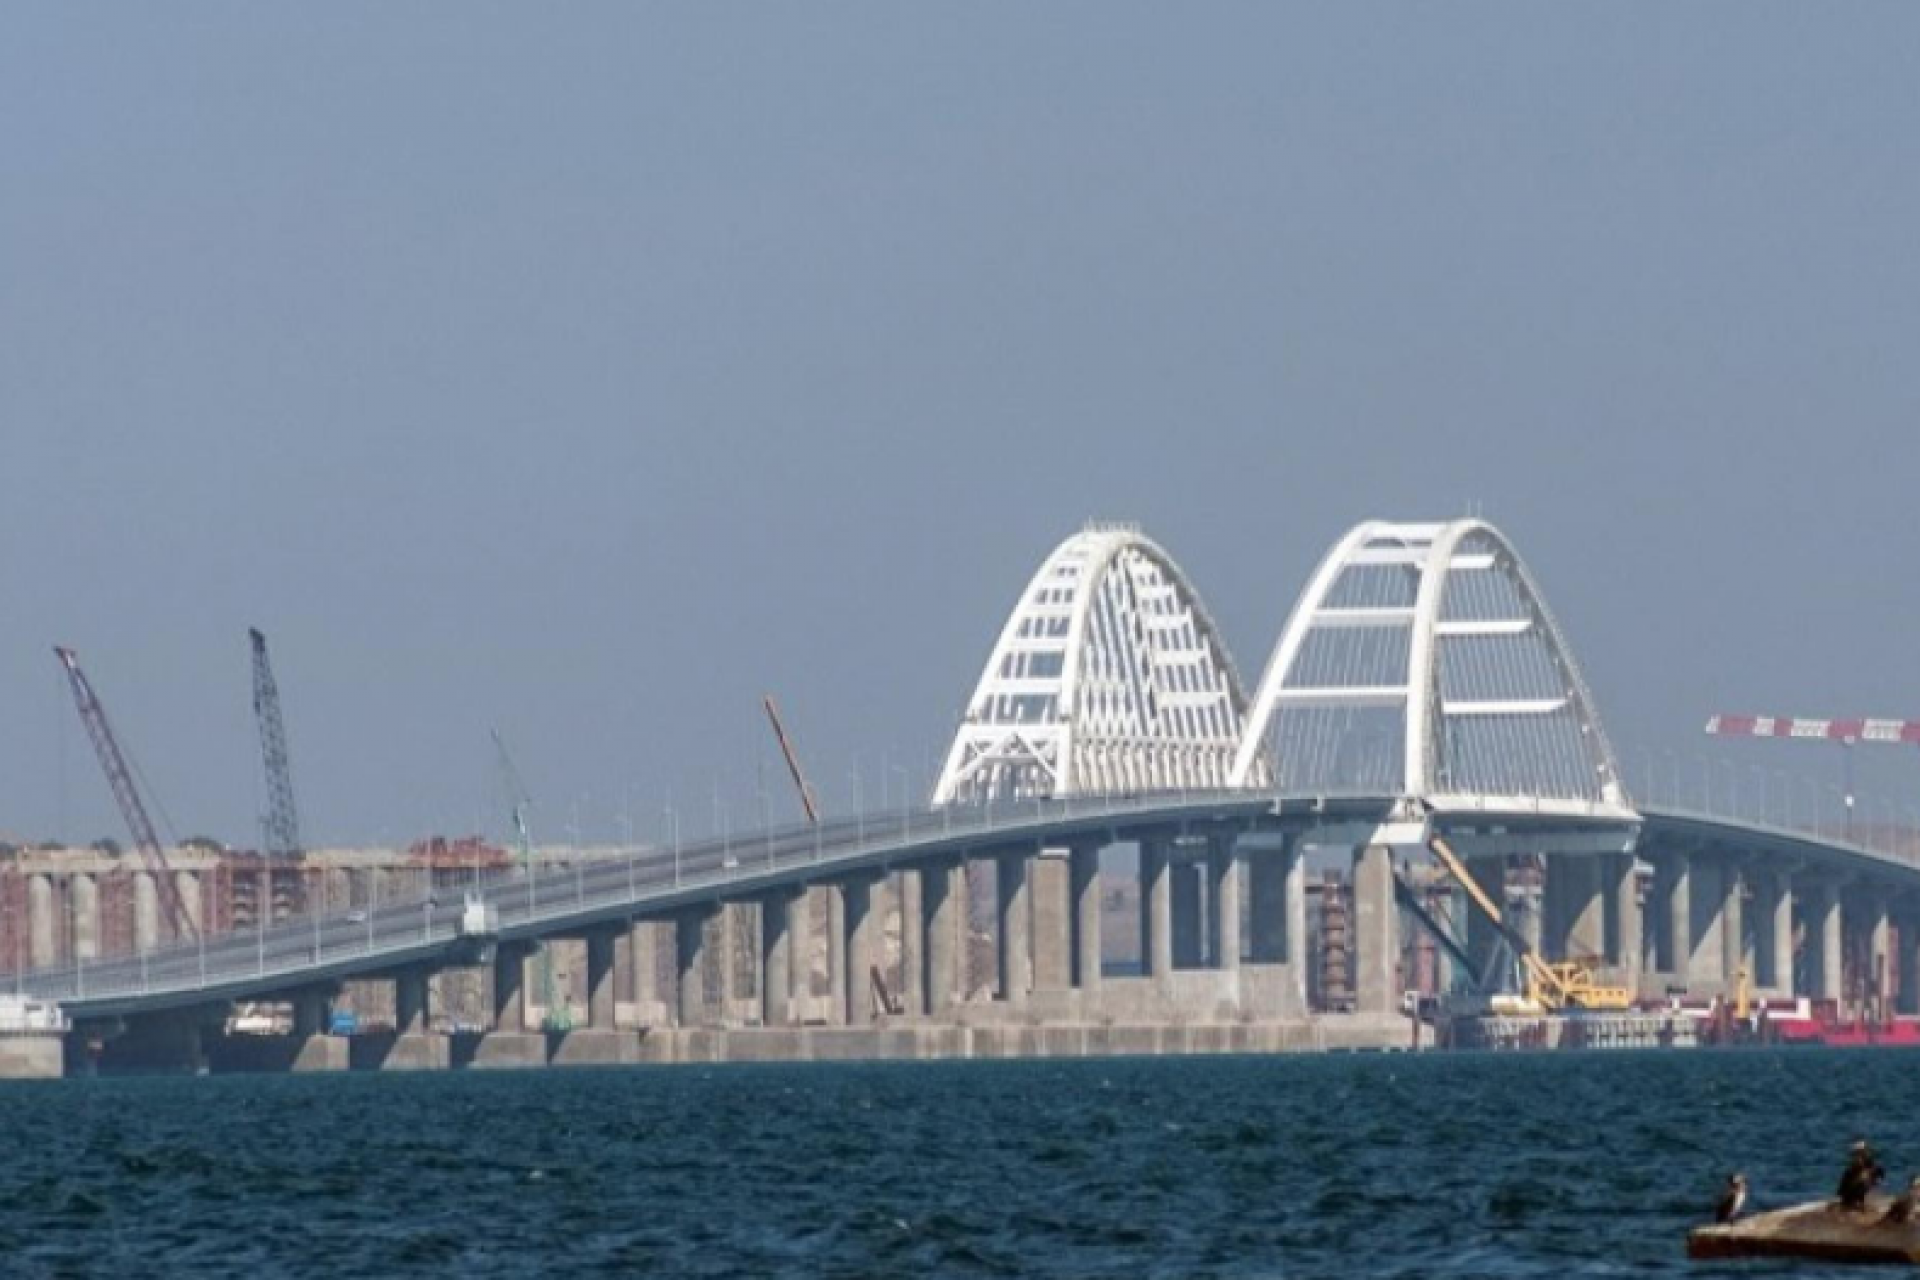 The railway arch of the Crimean bridge is connected to the first span